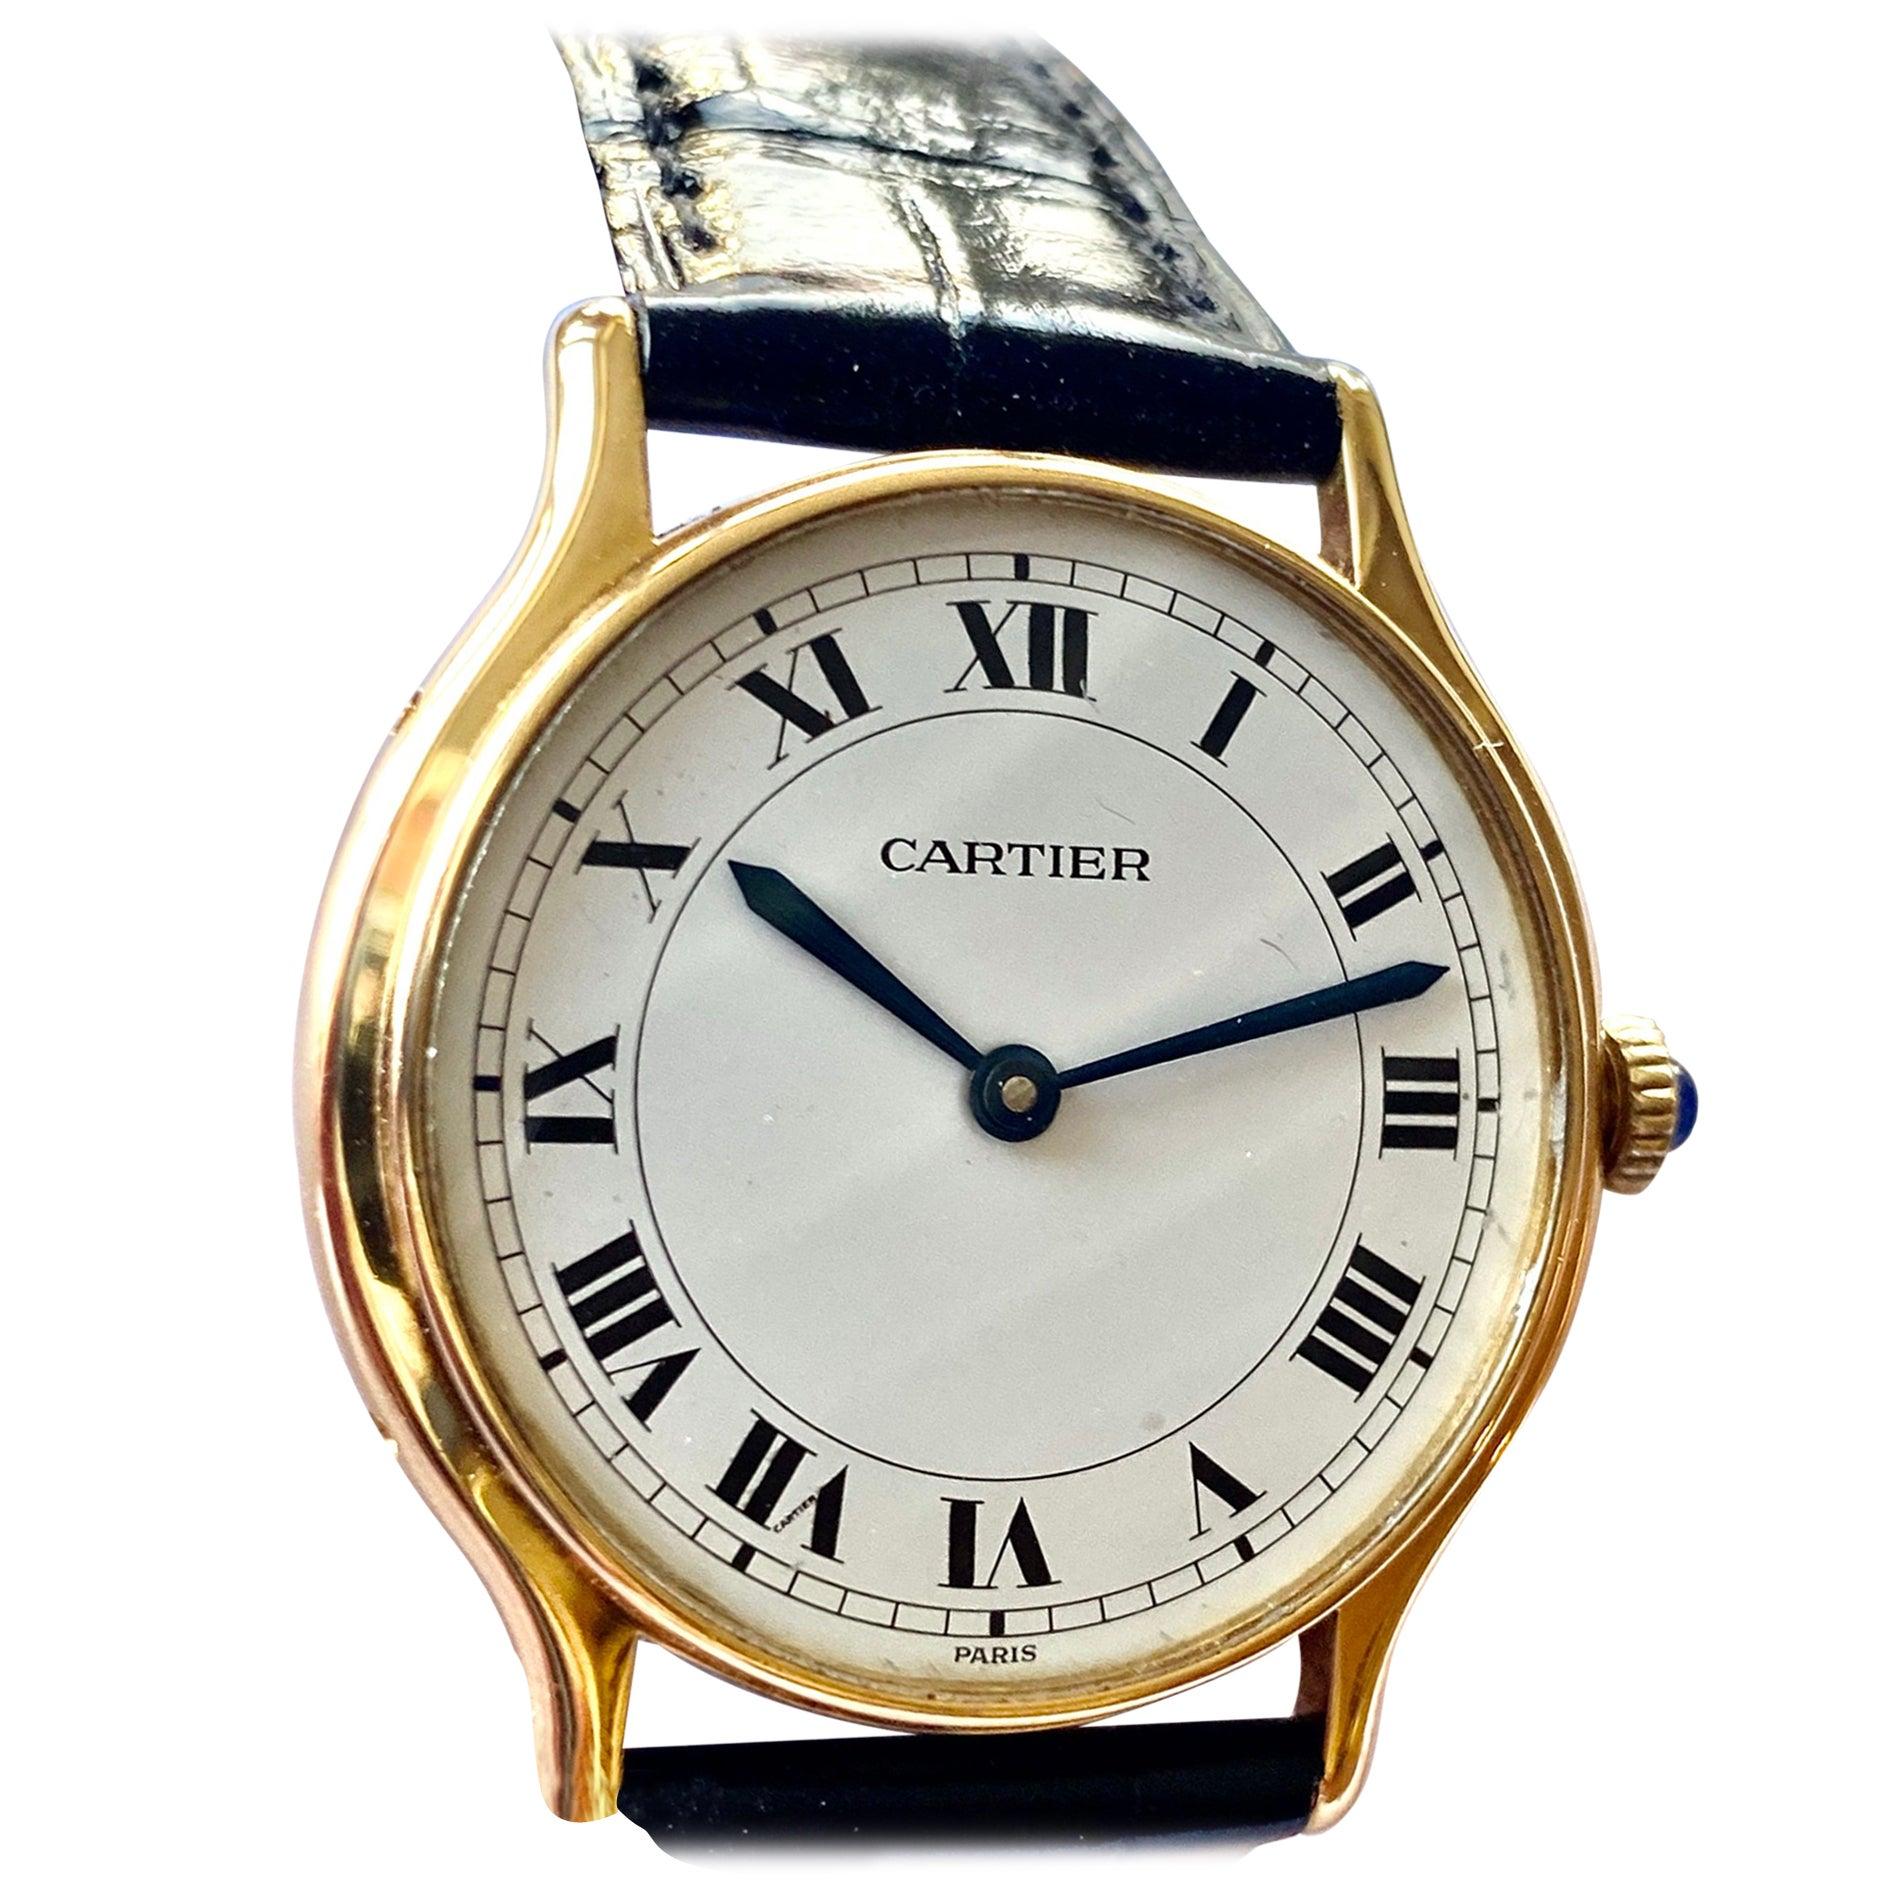 Cartier Paris, 18 Karat Gold, Model: Ronde, Handwinding Movement, circa 1975